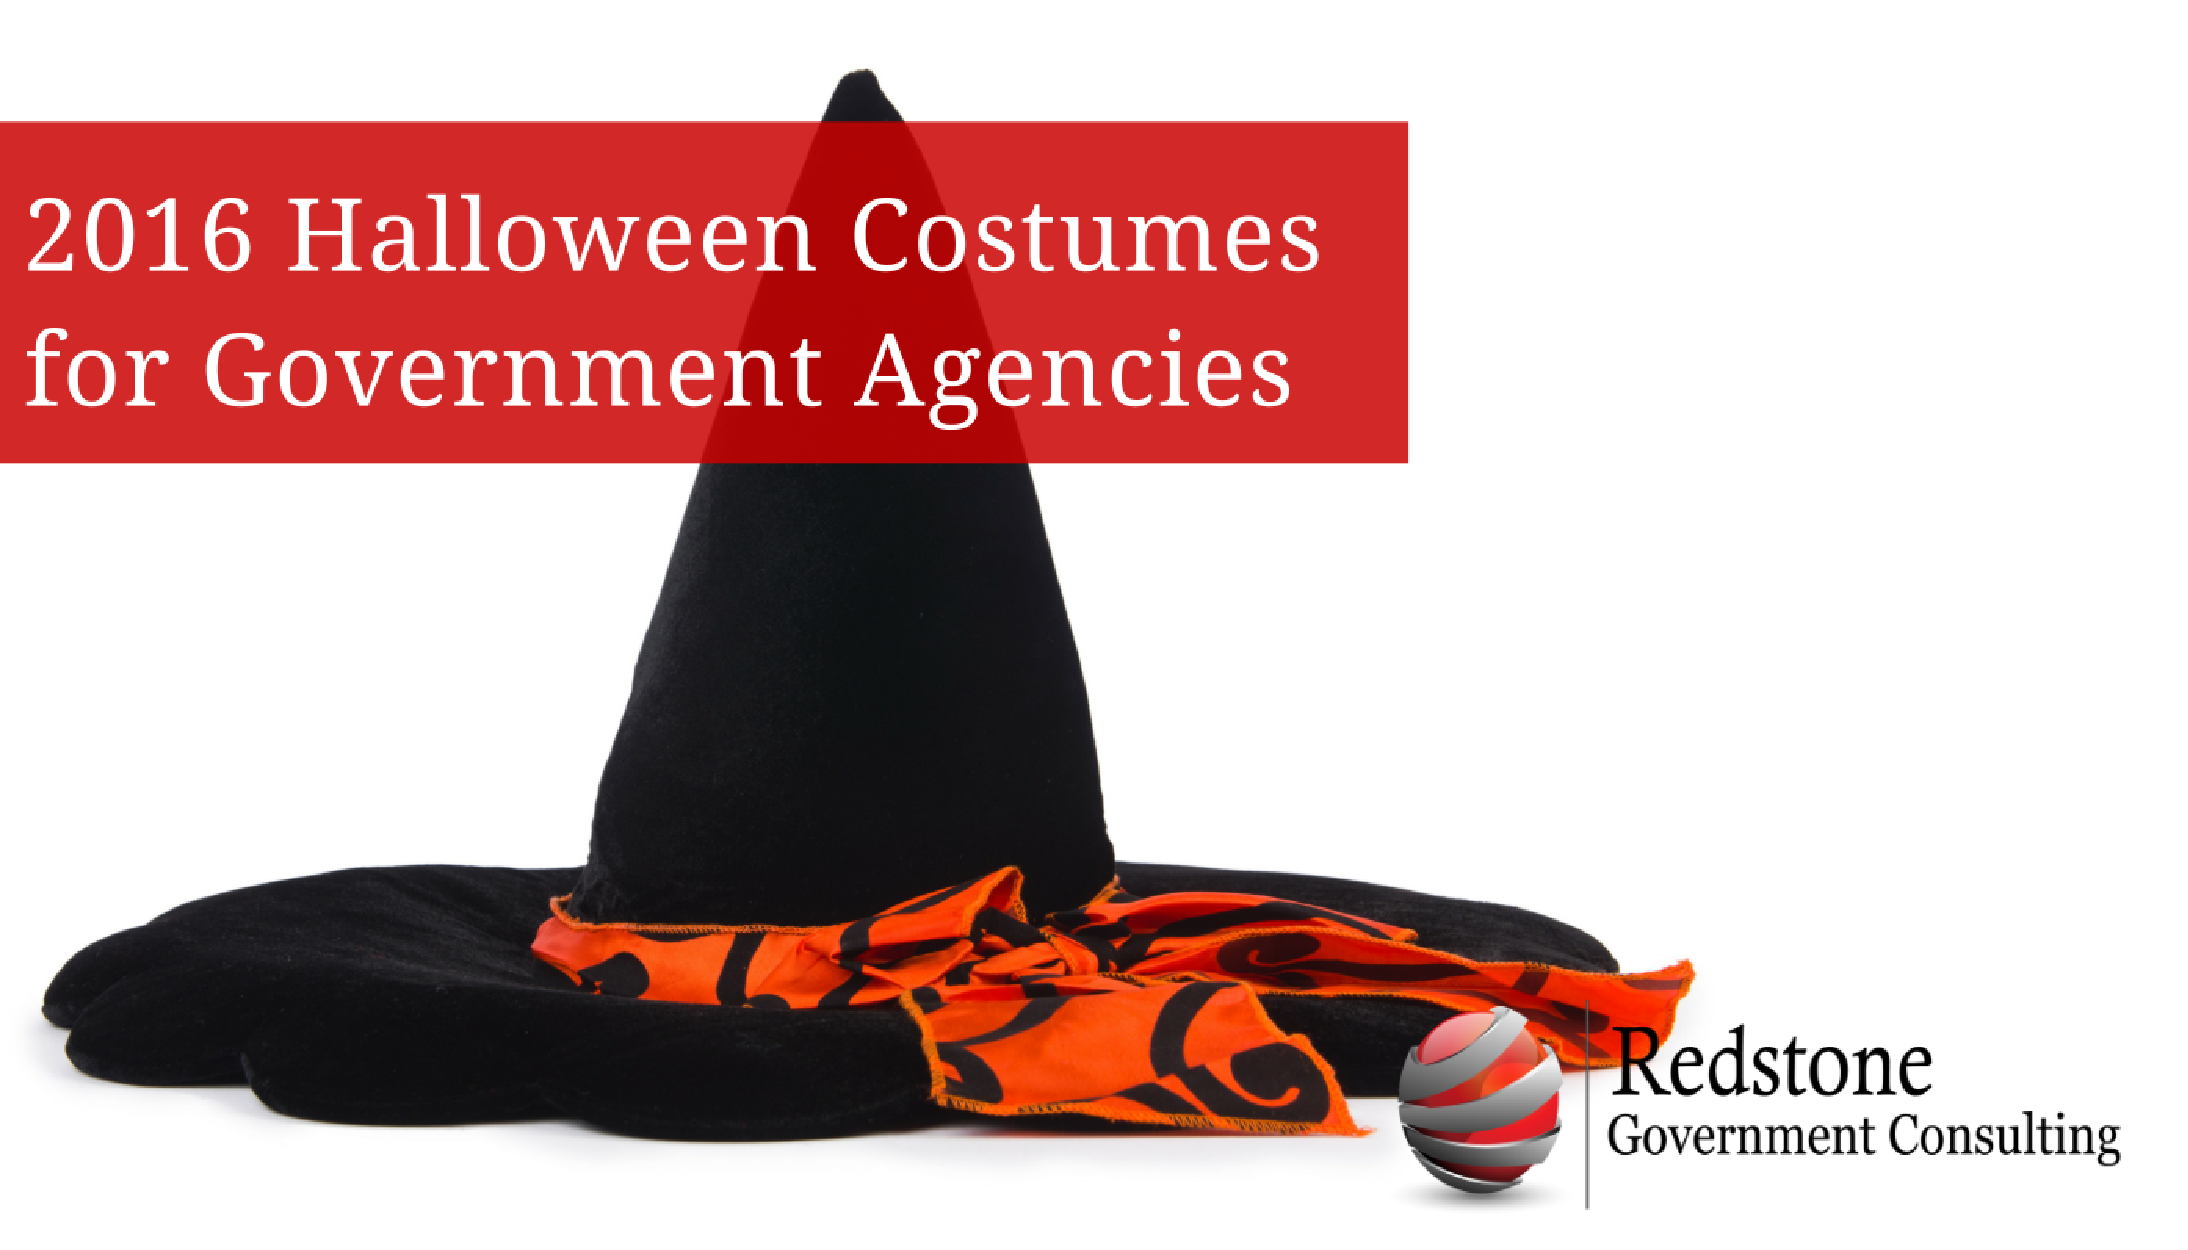 Redstone - 2016 Halloween Costumes for Government Agencies.png